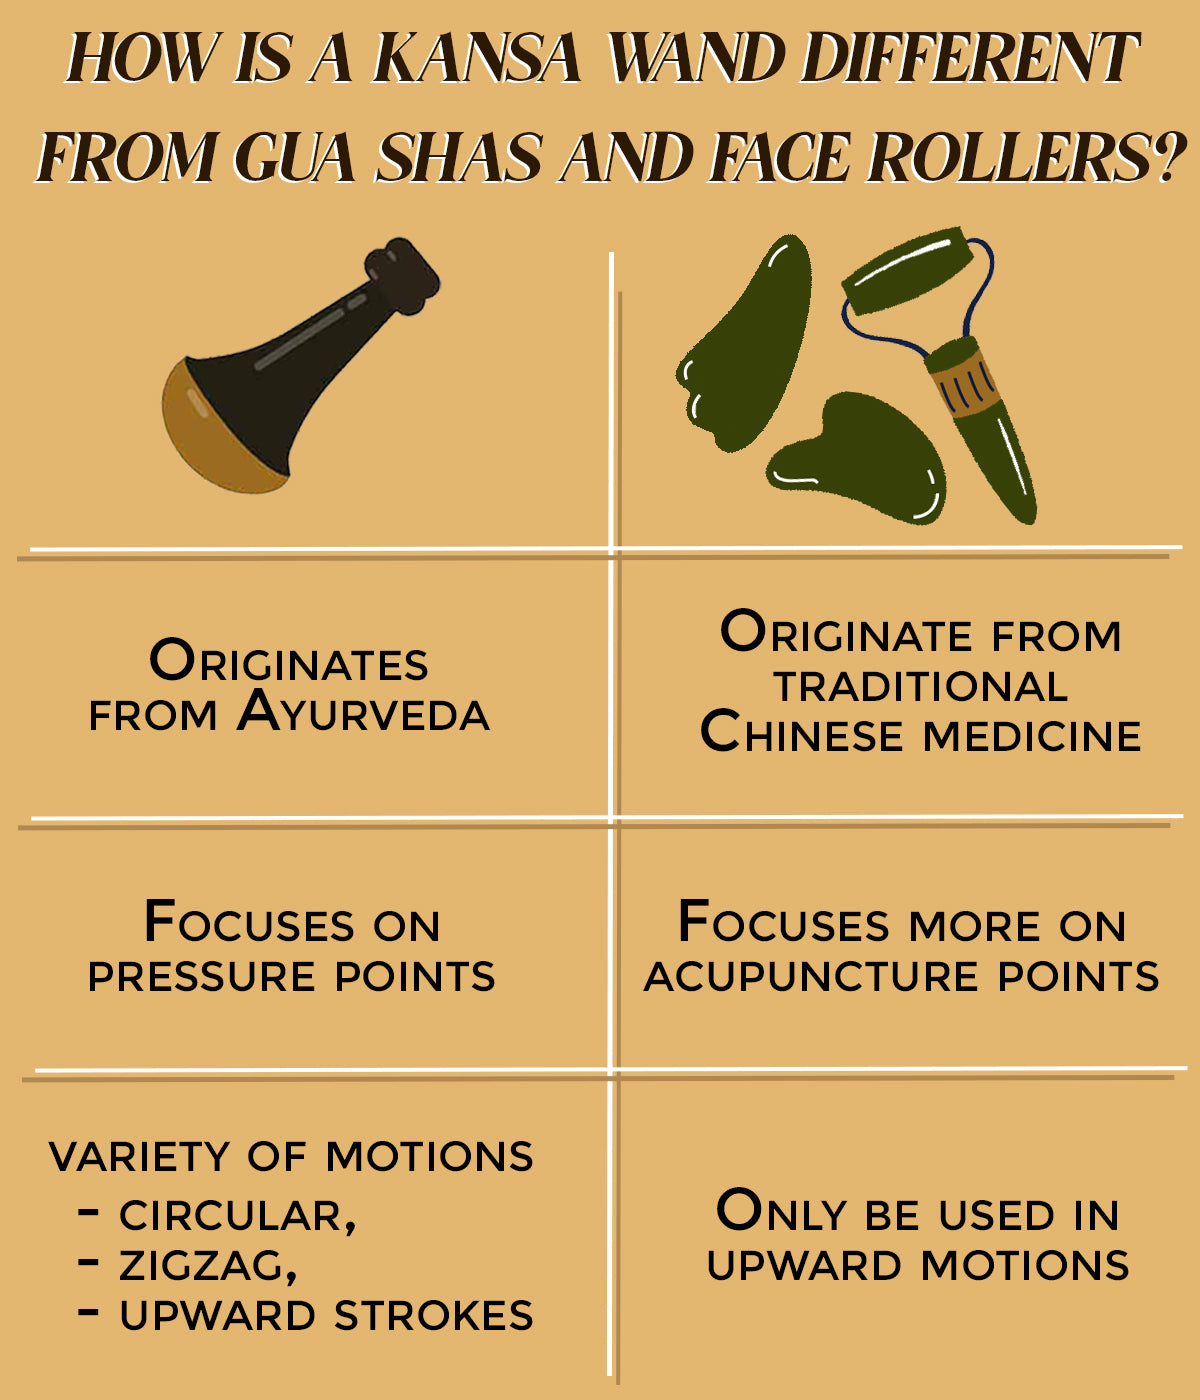 This is an image of the difference between a Kansa Wand and Gua Shas and Face Rollers